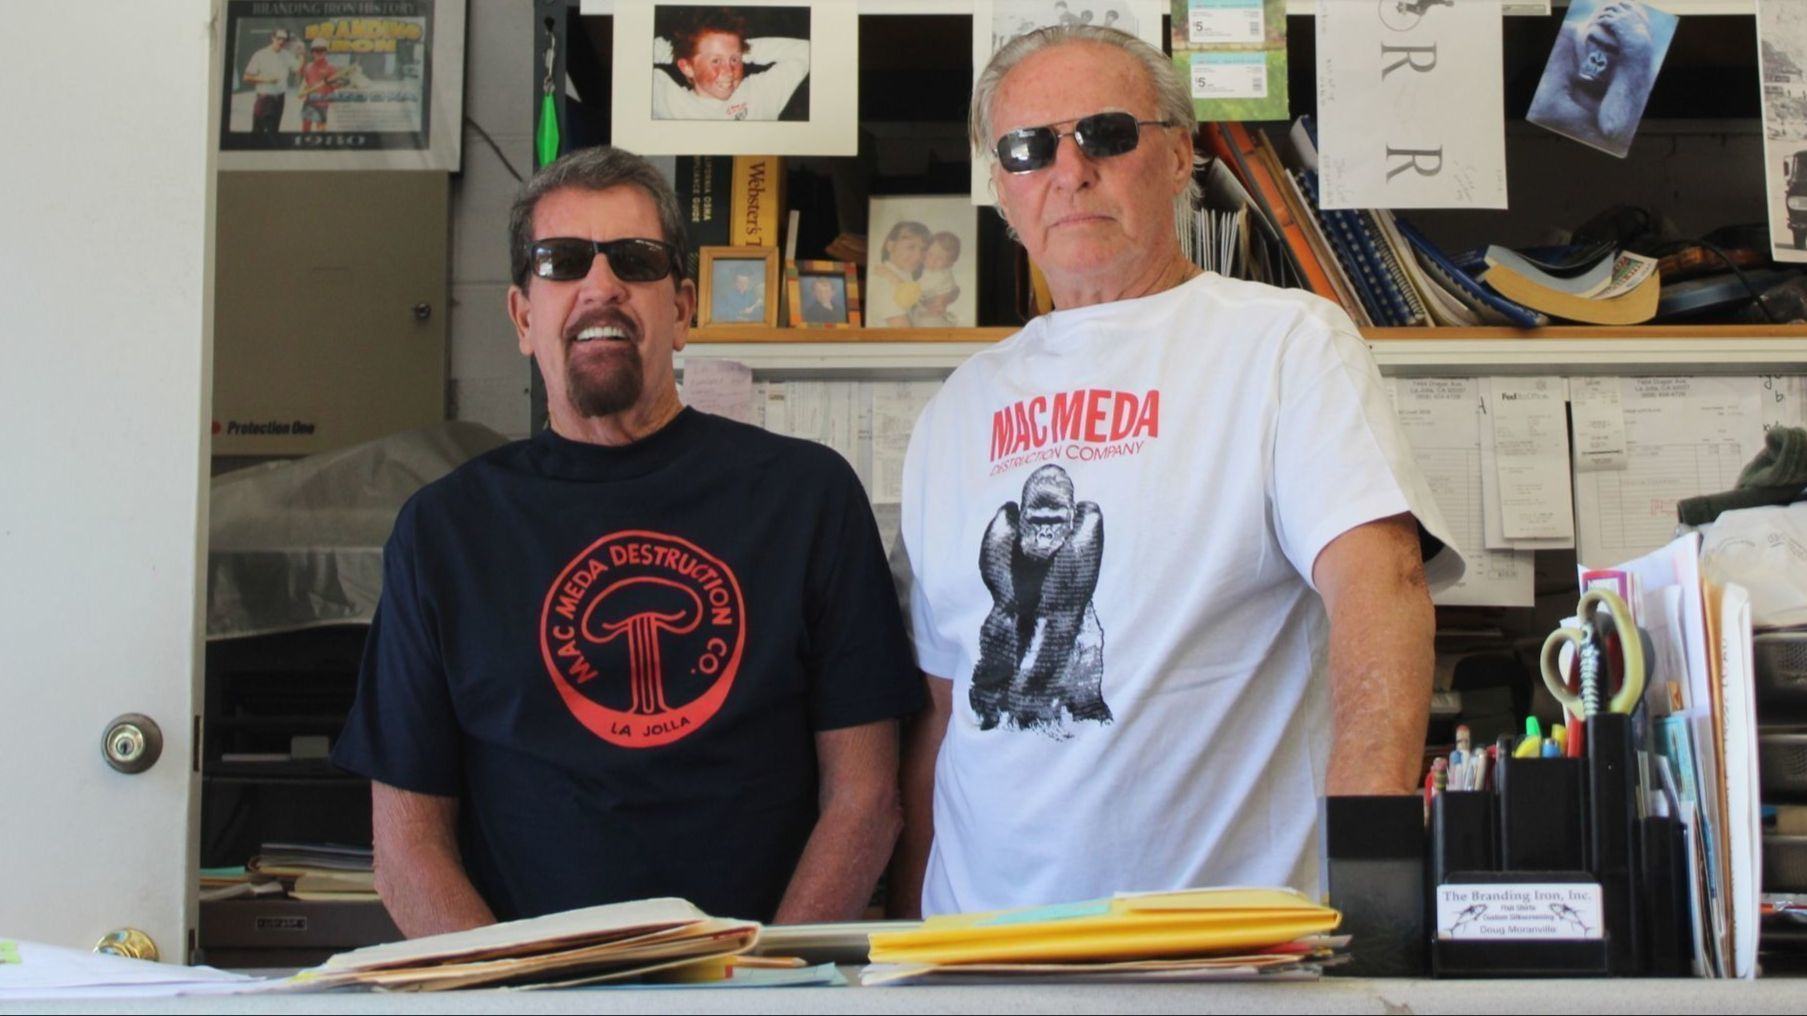 Doug Moranville, left, and Bill Decker reminisce about Mac Meda at Moranville's Branding Iron silkscreening shop..